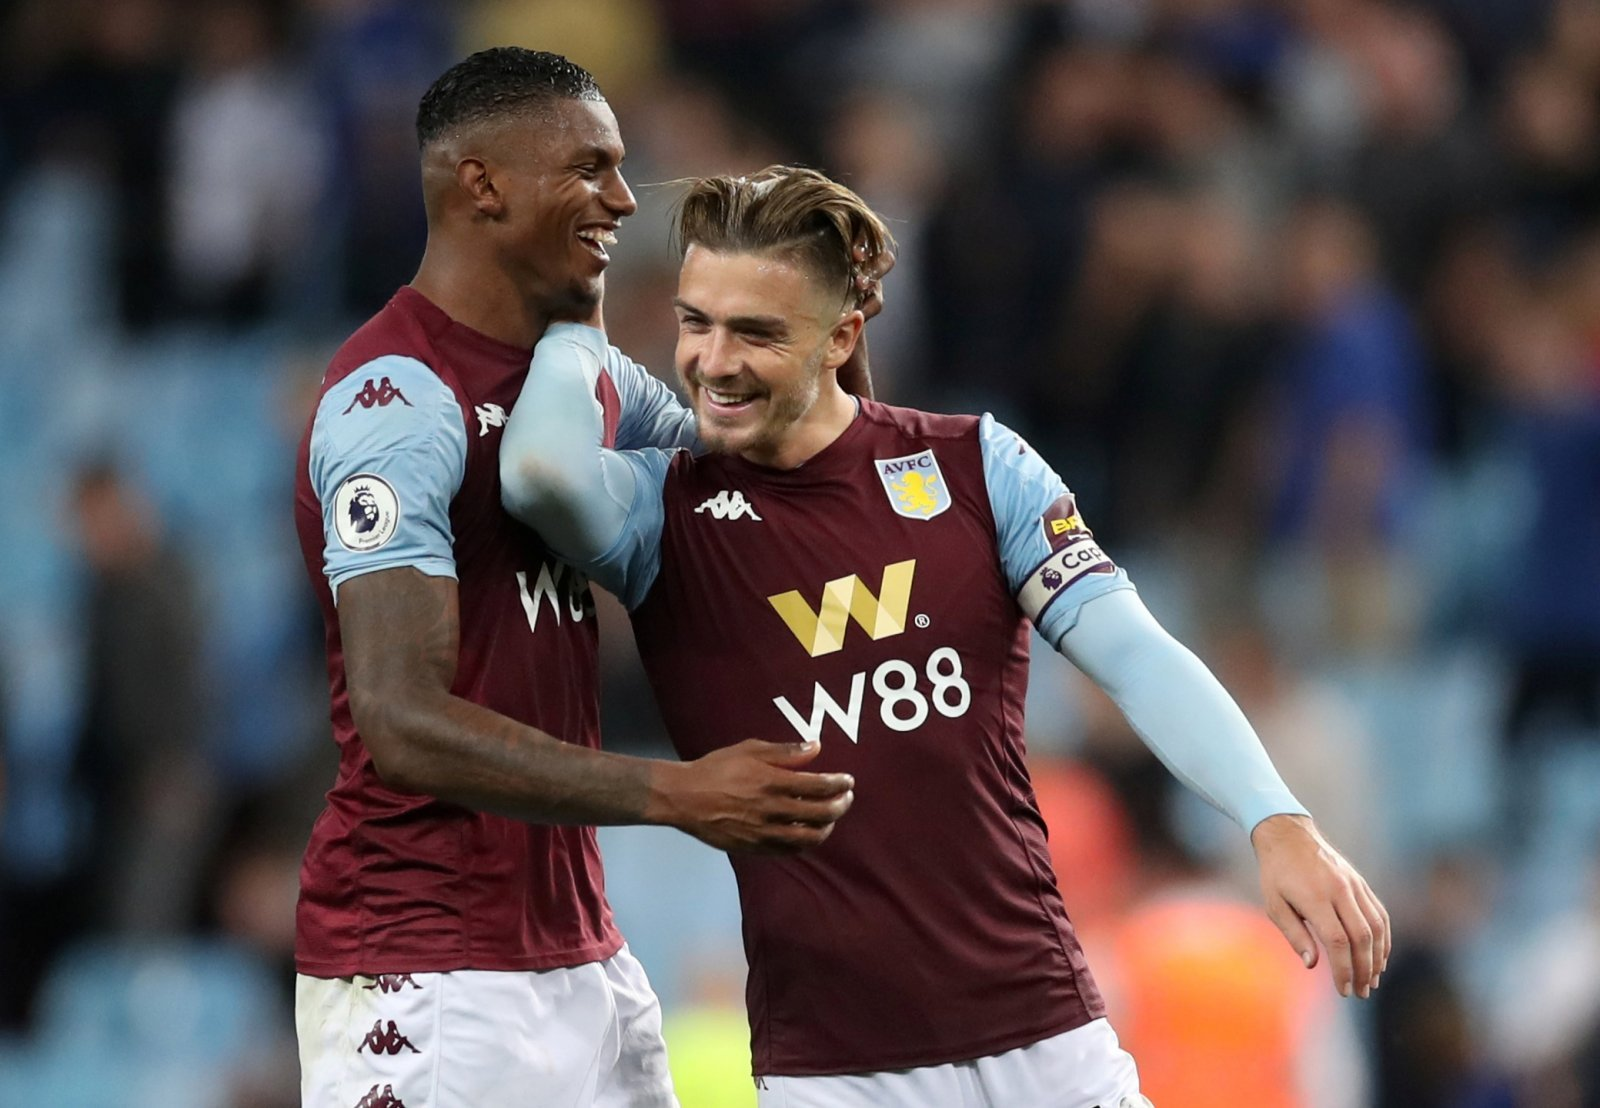 Aston Villa: Fans drooling over Jack Grealish after Brighton performance